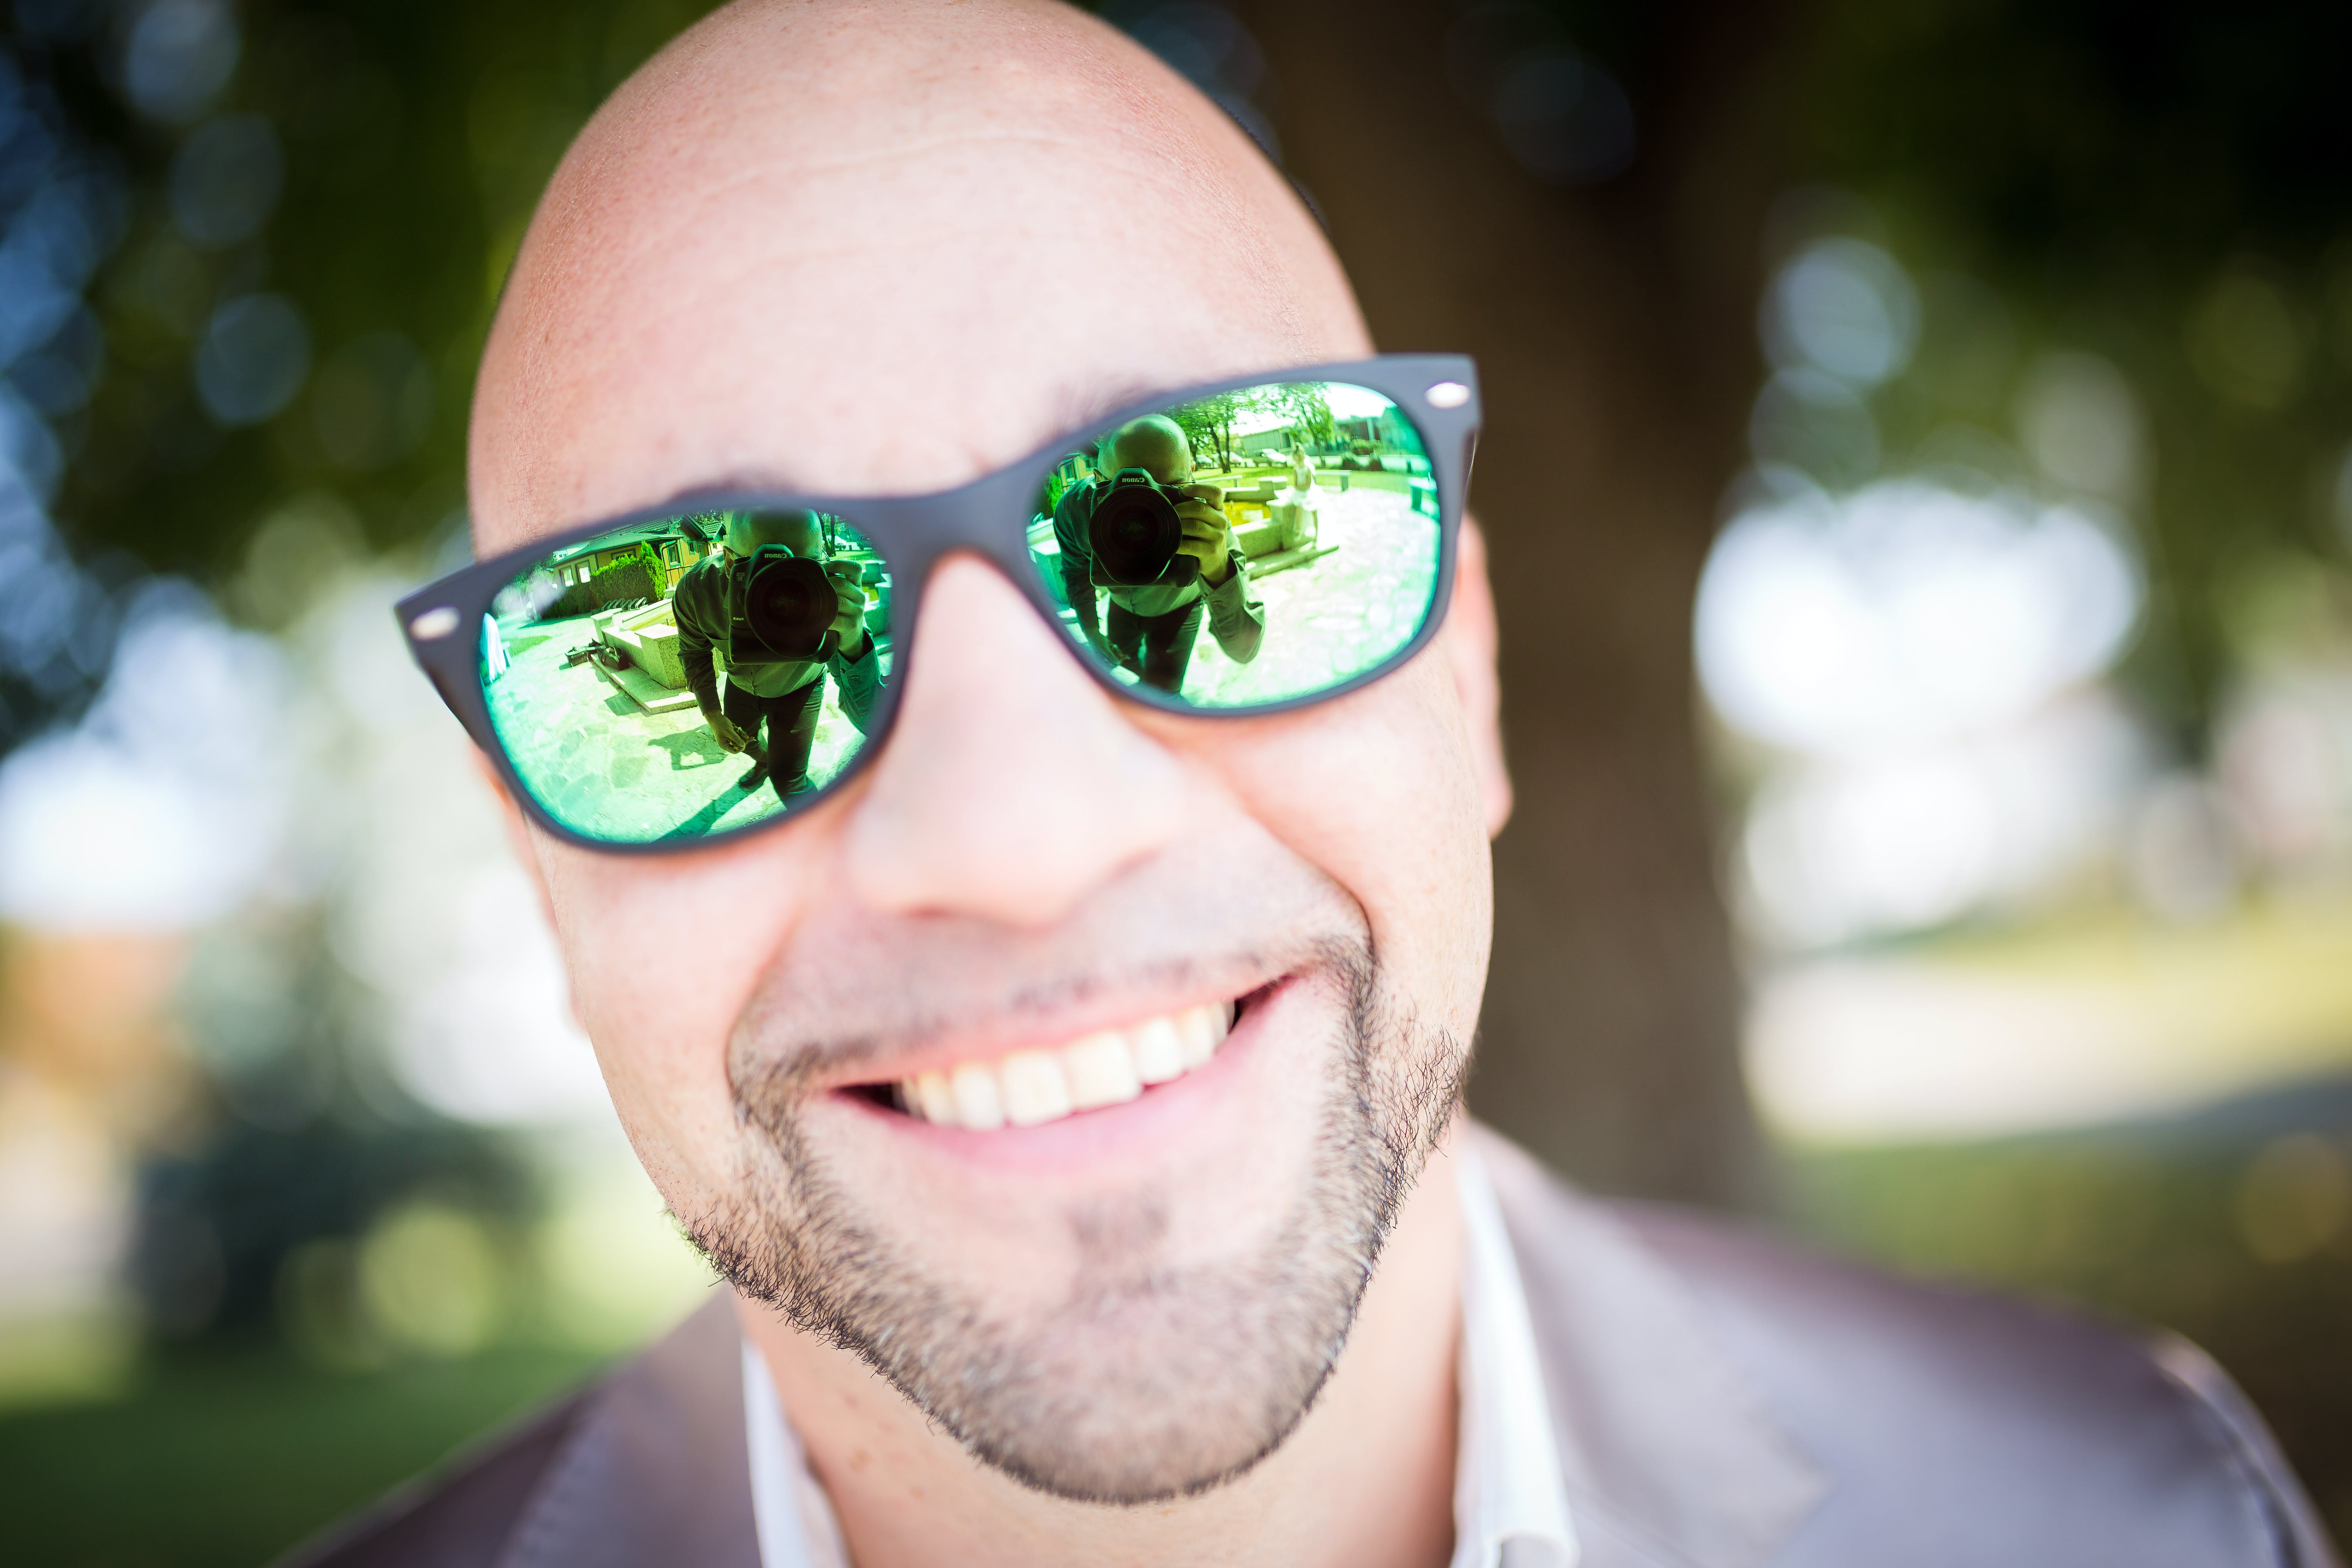 Shallow Focus Photography of Man in Gray Top Wearing Green Sunglasses With Black Frames